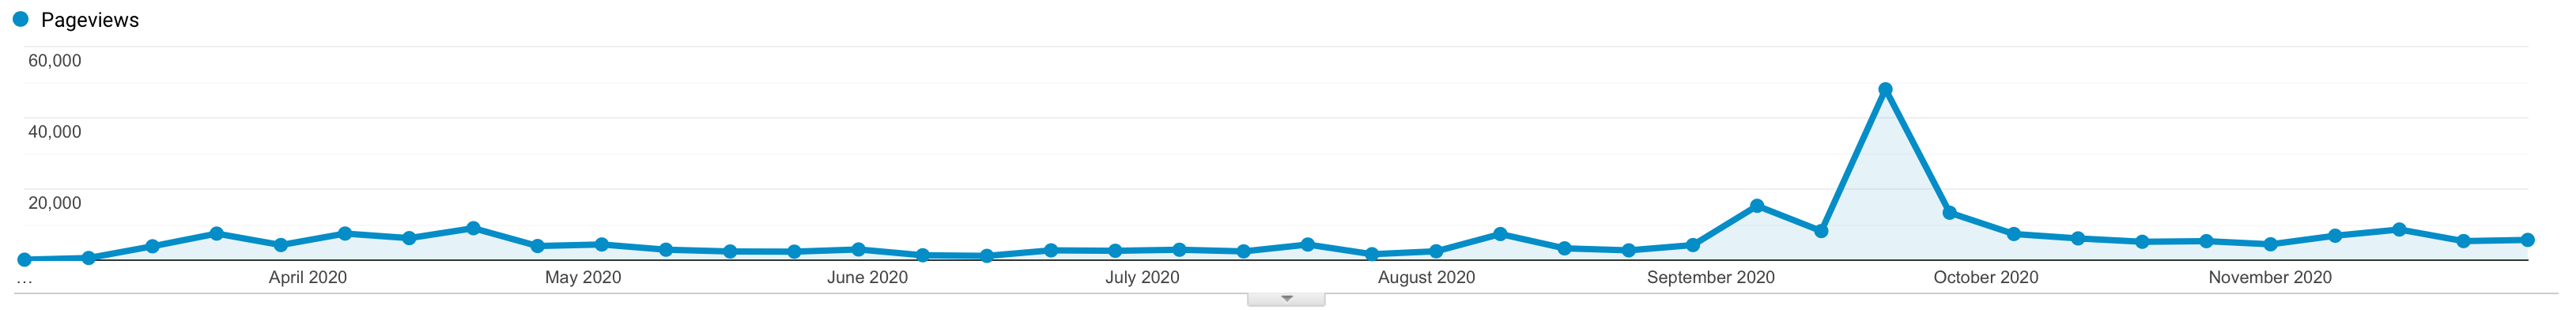 Weekly pageviews for Irrational Exuberance.